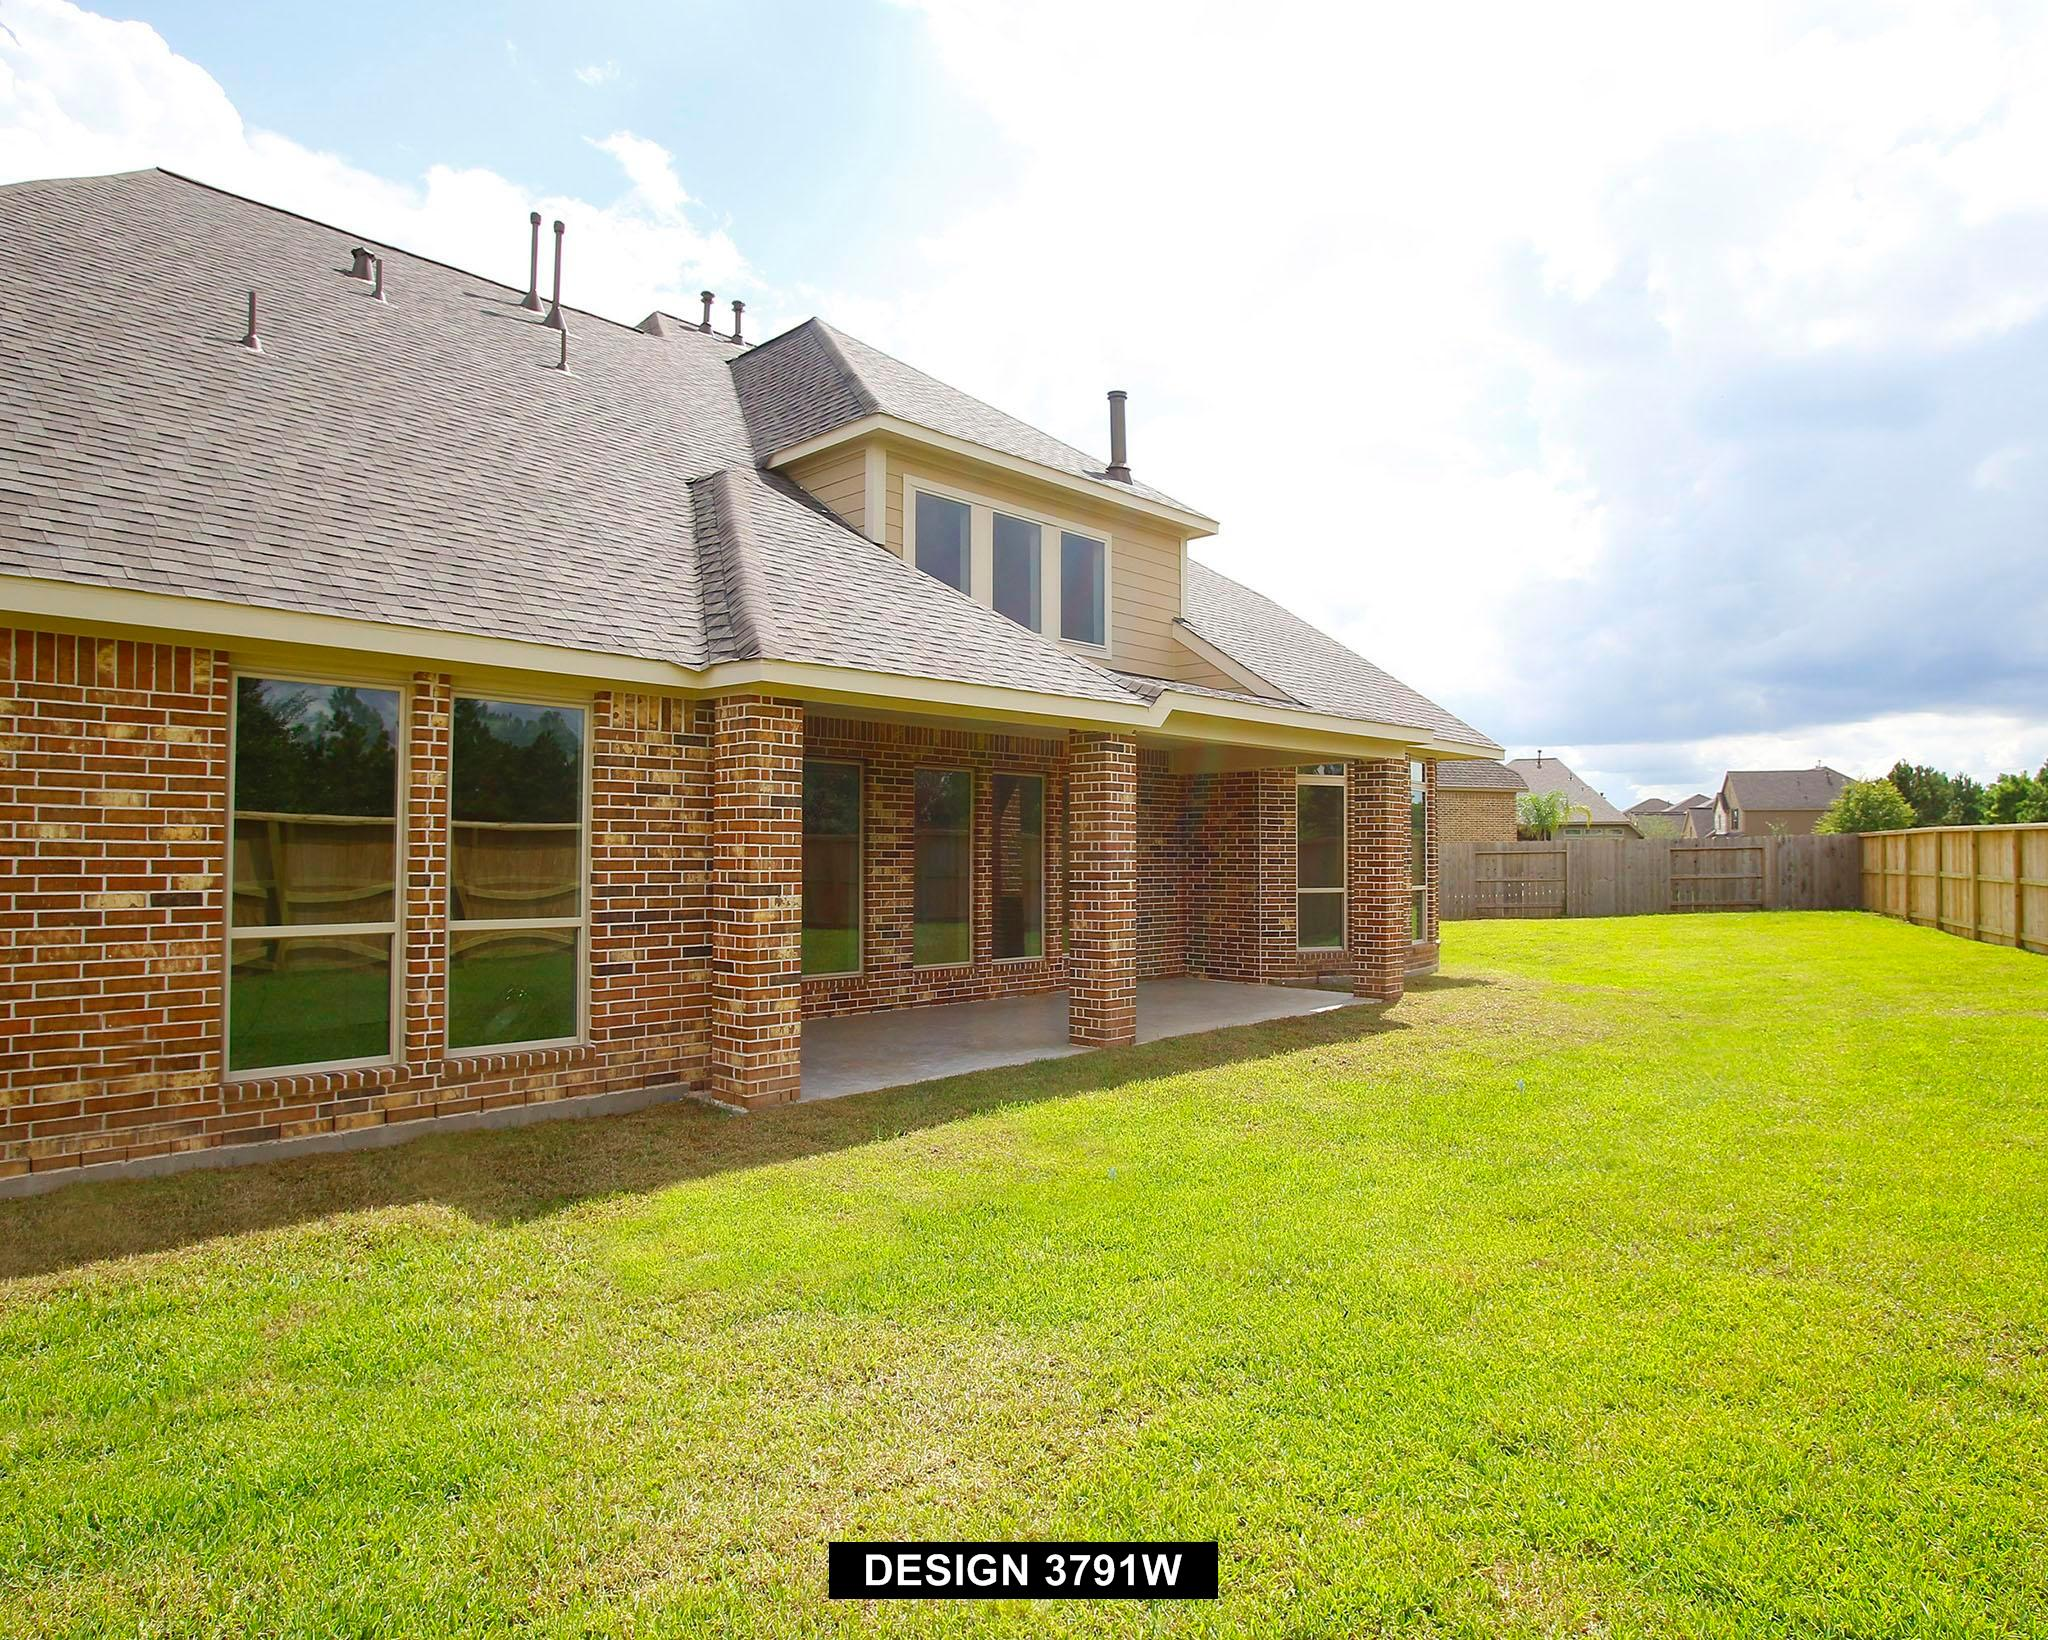 brazoria singles 61 single family homes for sale in brazoria tx view pictures of homes, review sales history, and use our detailed filters to find the perfect place.